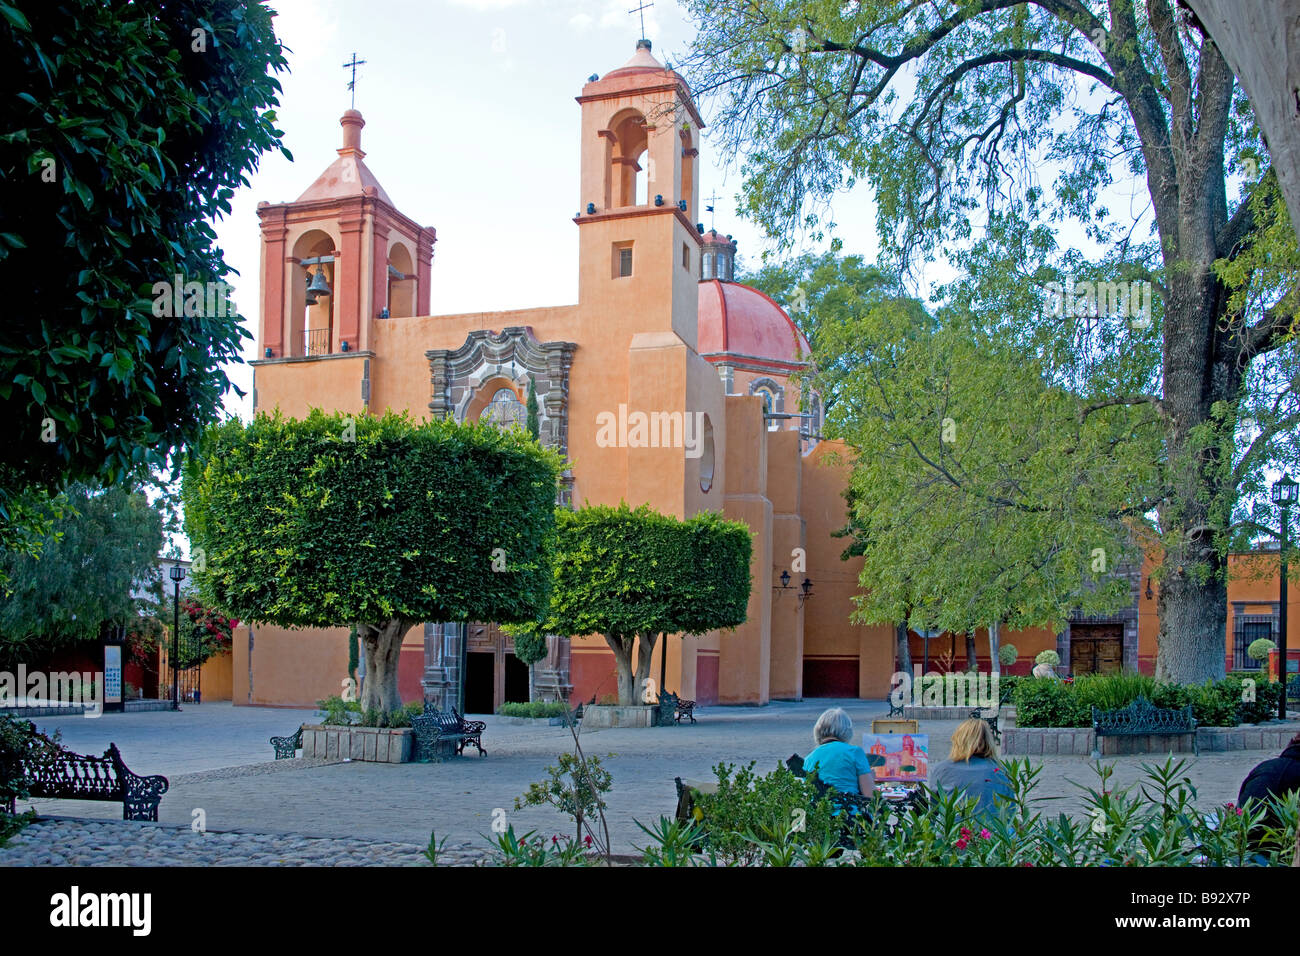 Painting the Church of the Holy Spirit, San Miguel de Allende, Mexico - Stock Image